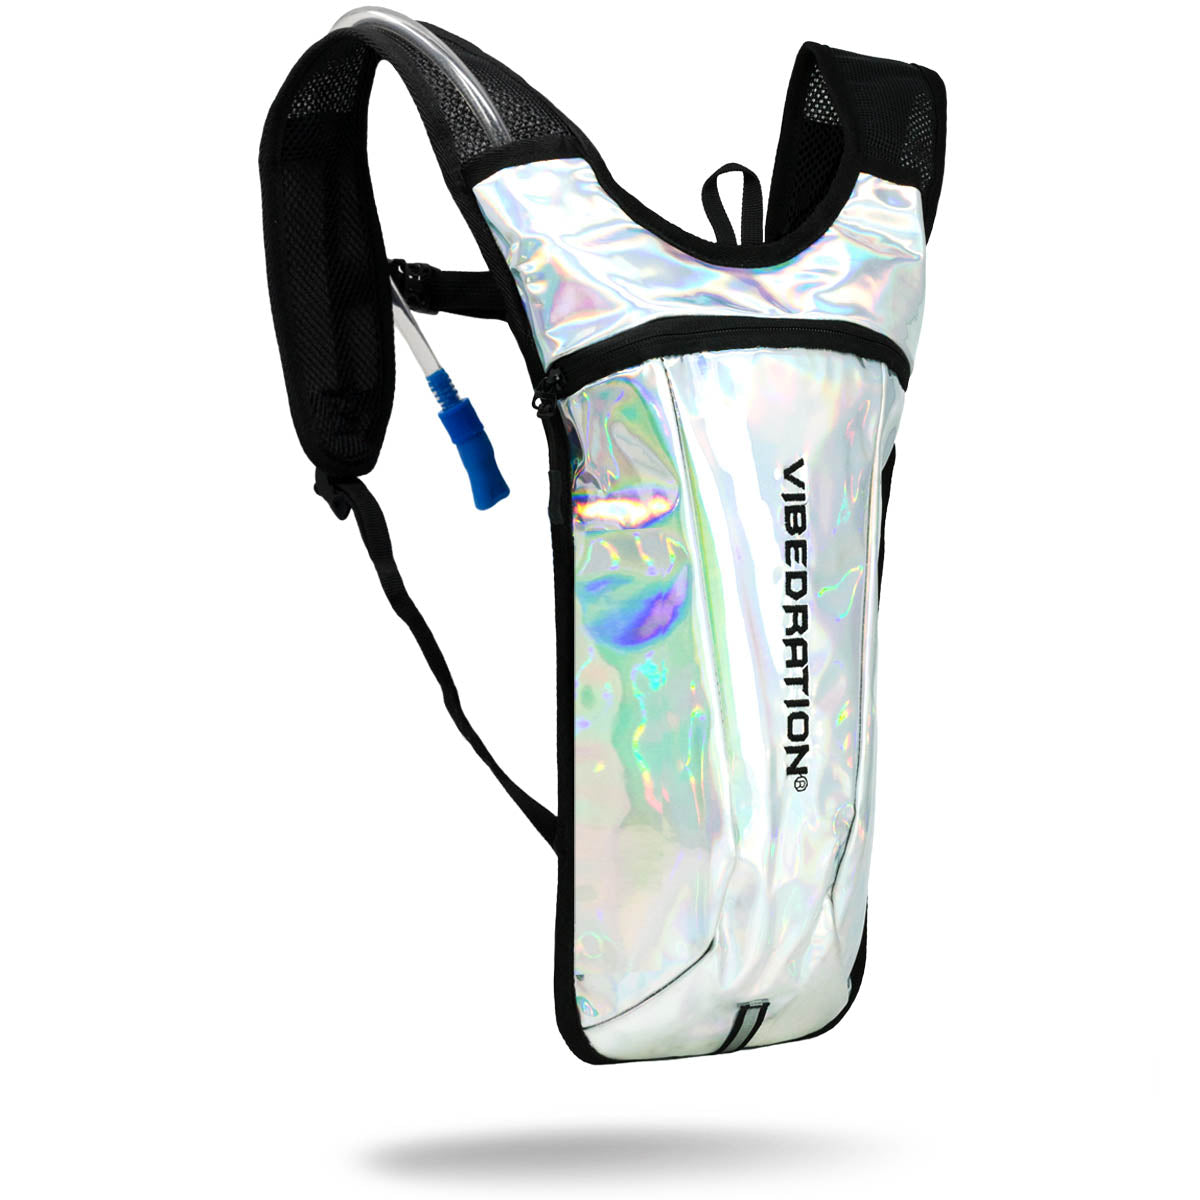 Silver holographic hydration pack for raves.